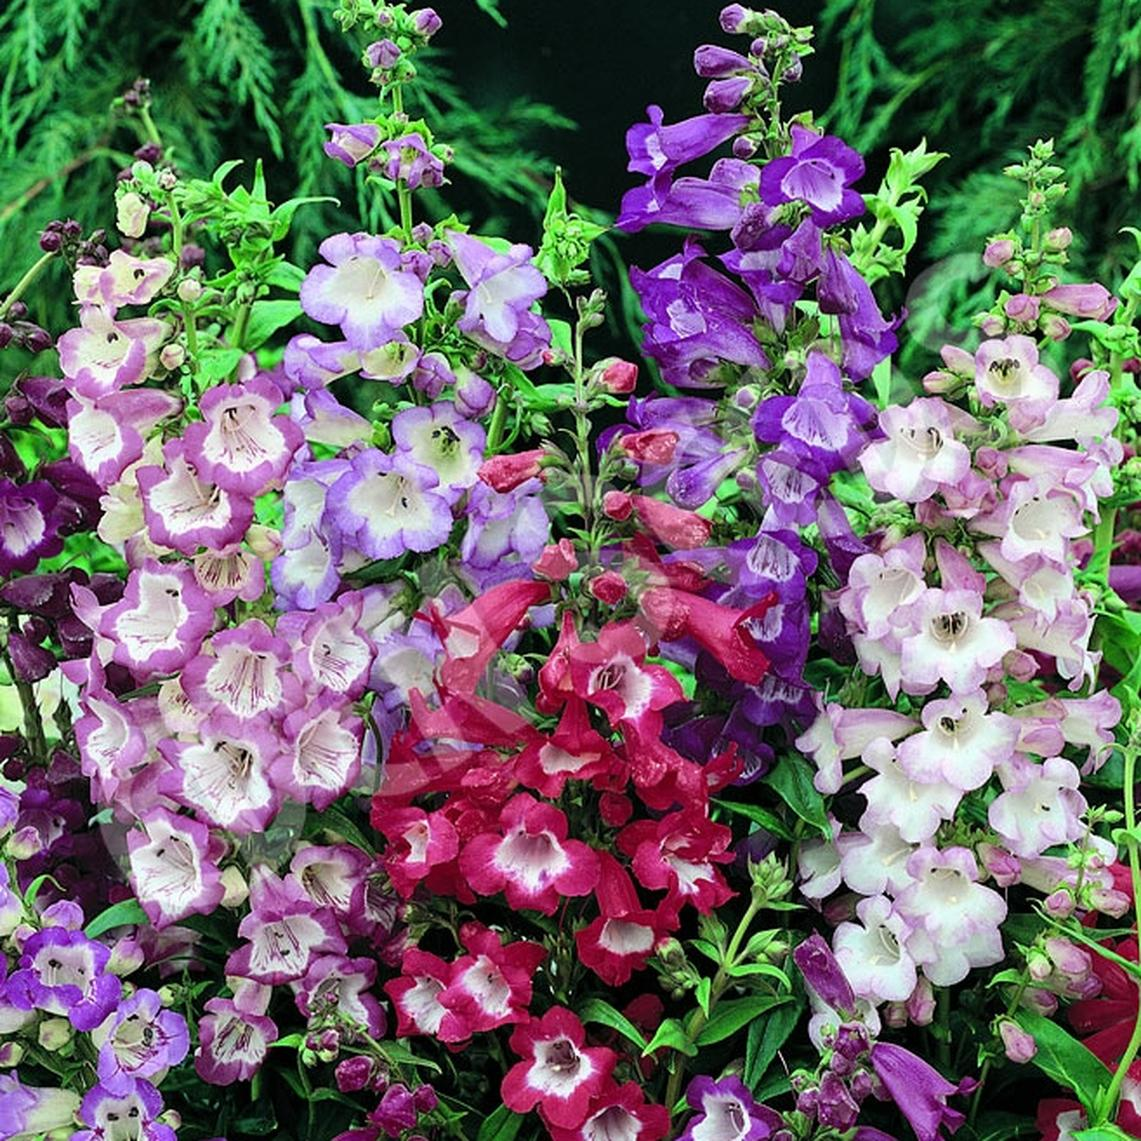 Penstemon Seeds - Sensation Mix